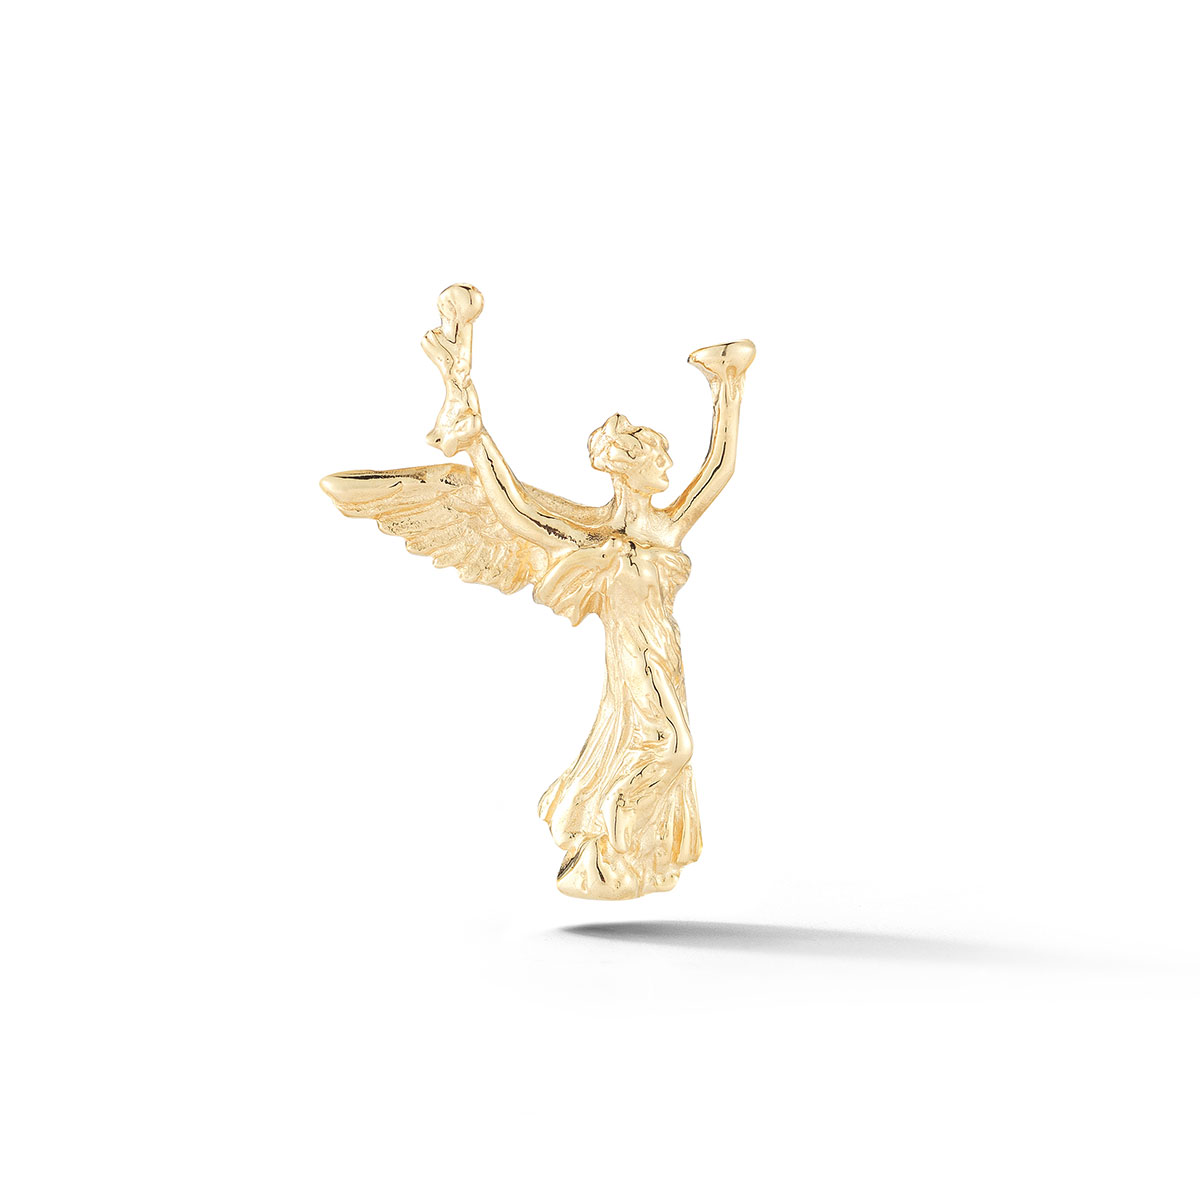 DJSOLTT01 Spirit of Life Lapel Pin